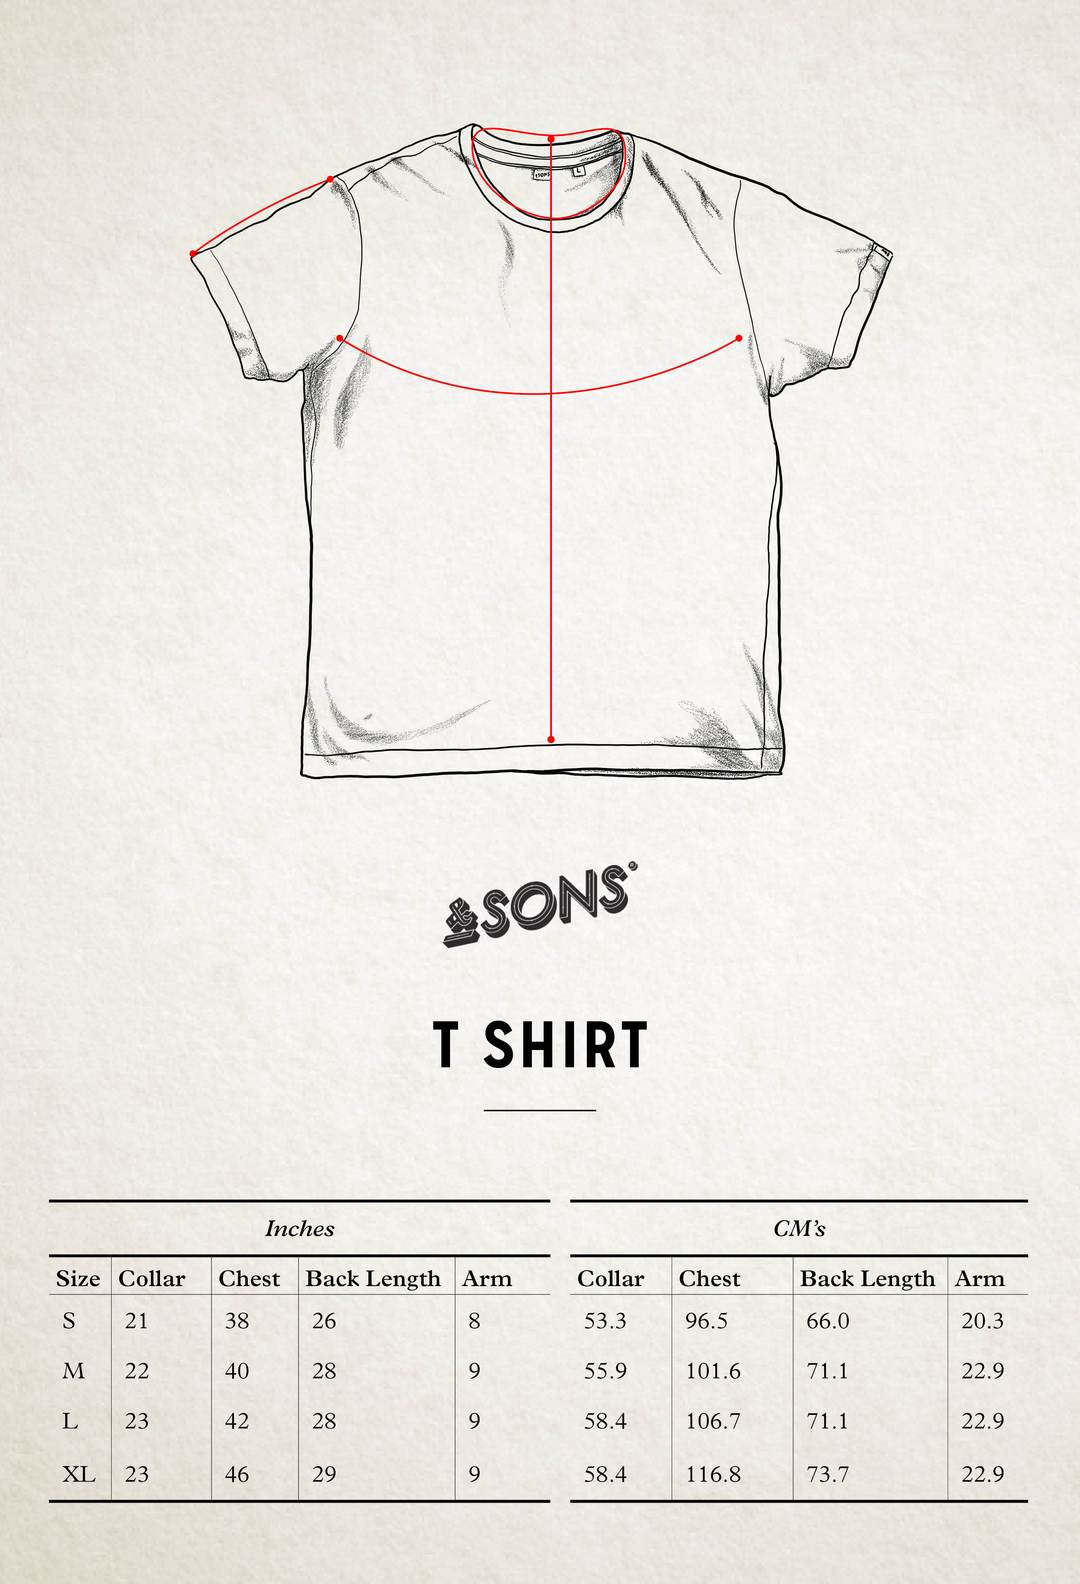 &SONS Men's Logo T-Shirt - Size Guide